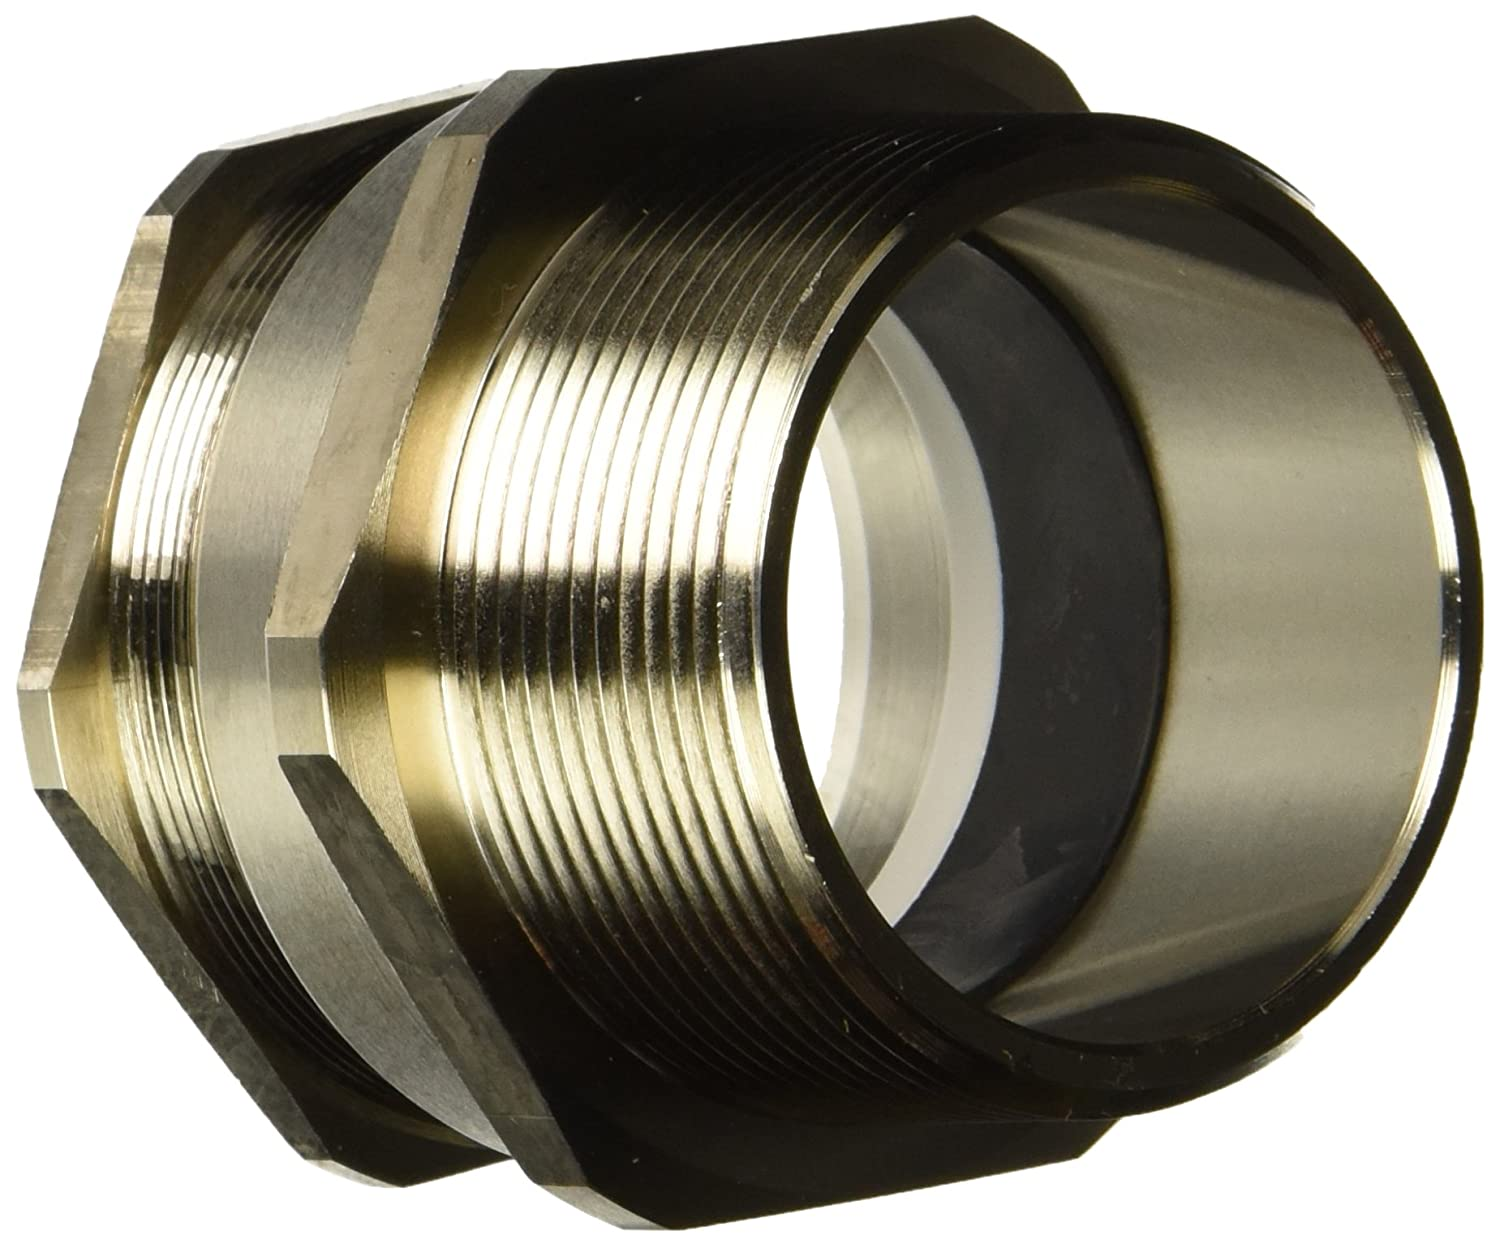 Connectors & Adapters Appleton 63SA2F2005 Hazardous Location Cable Gland, Unarmored, Straight, 2' NPT, Size 63S